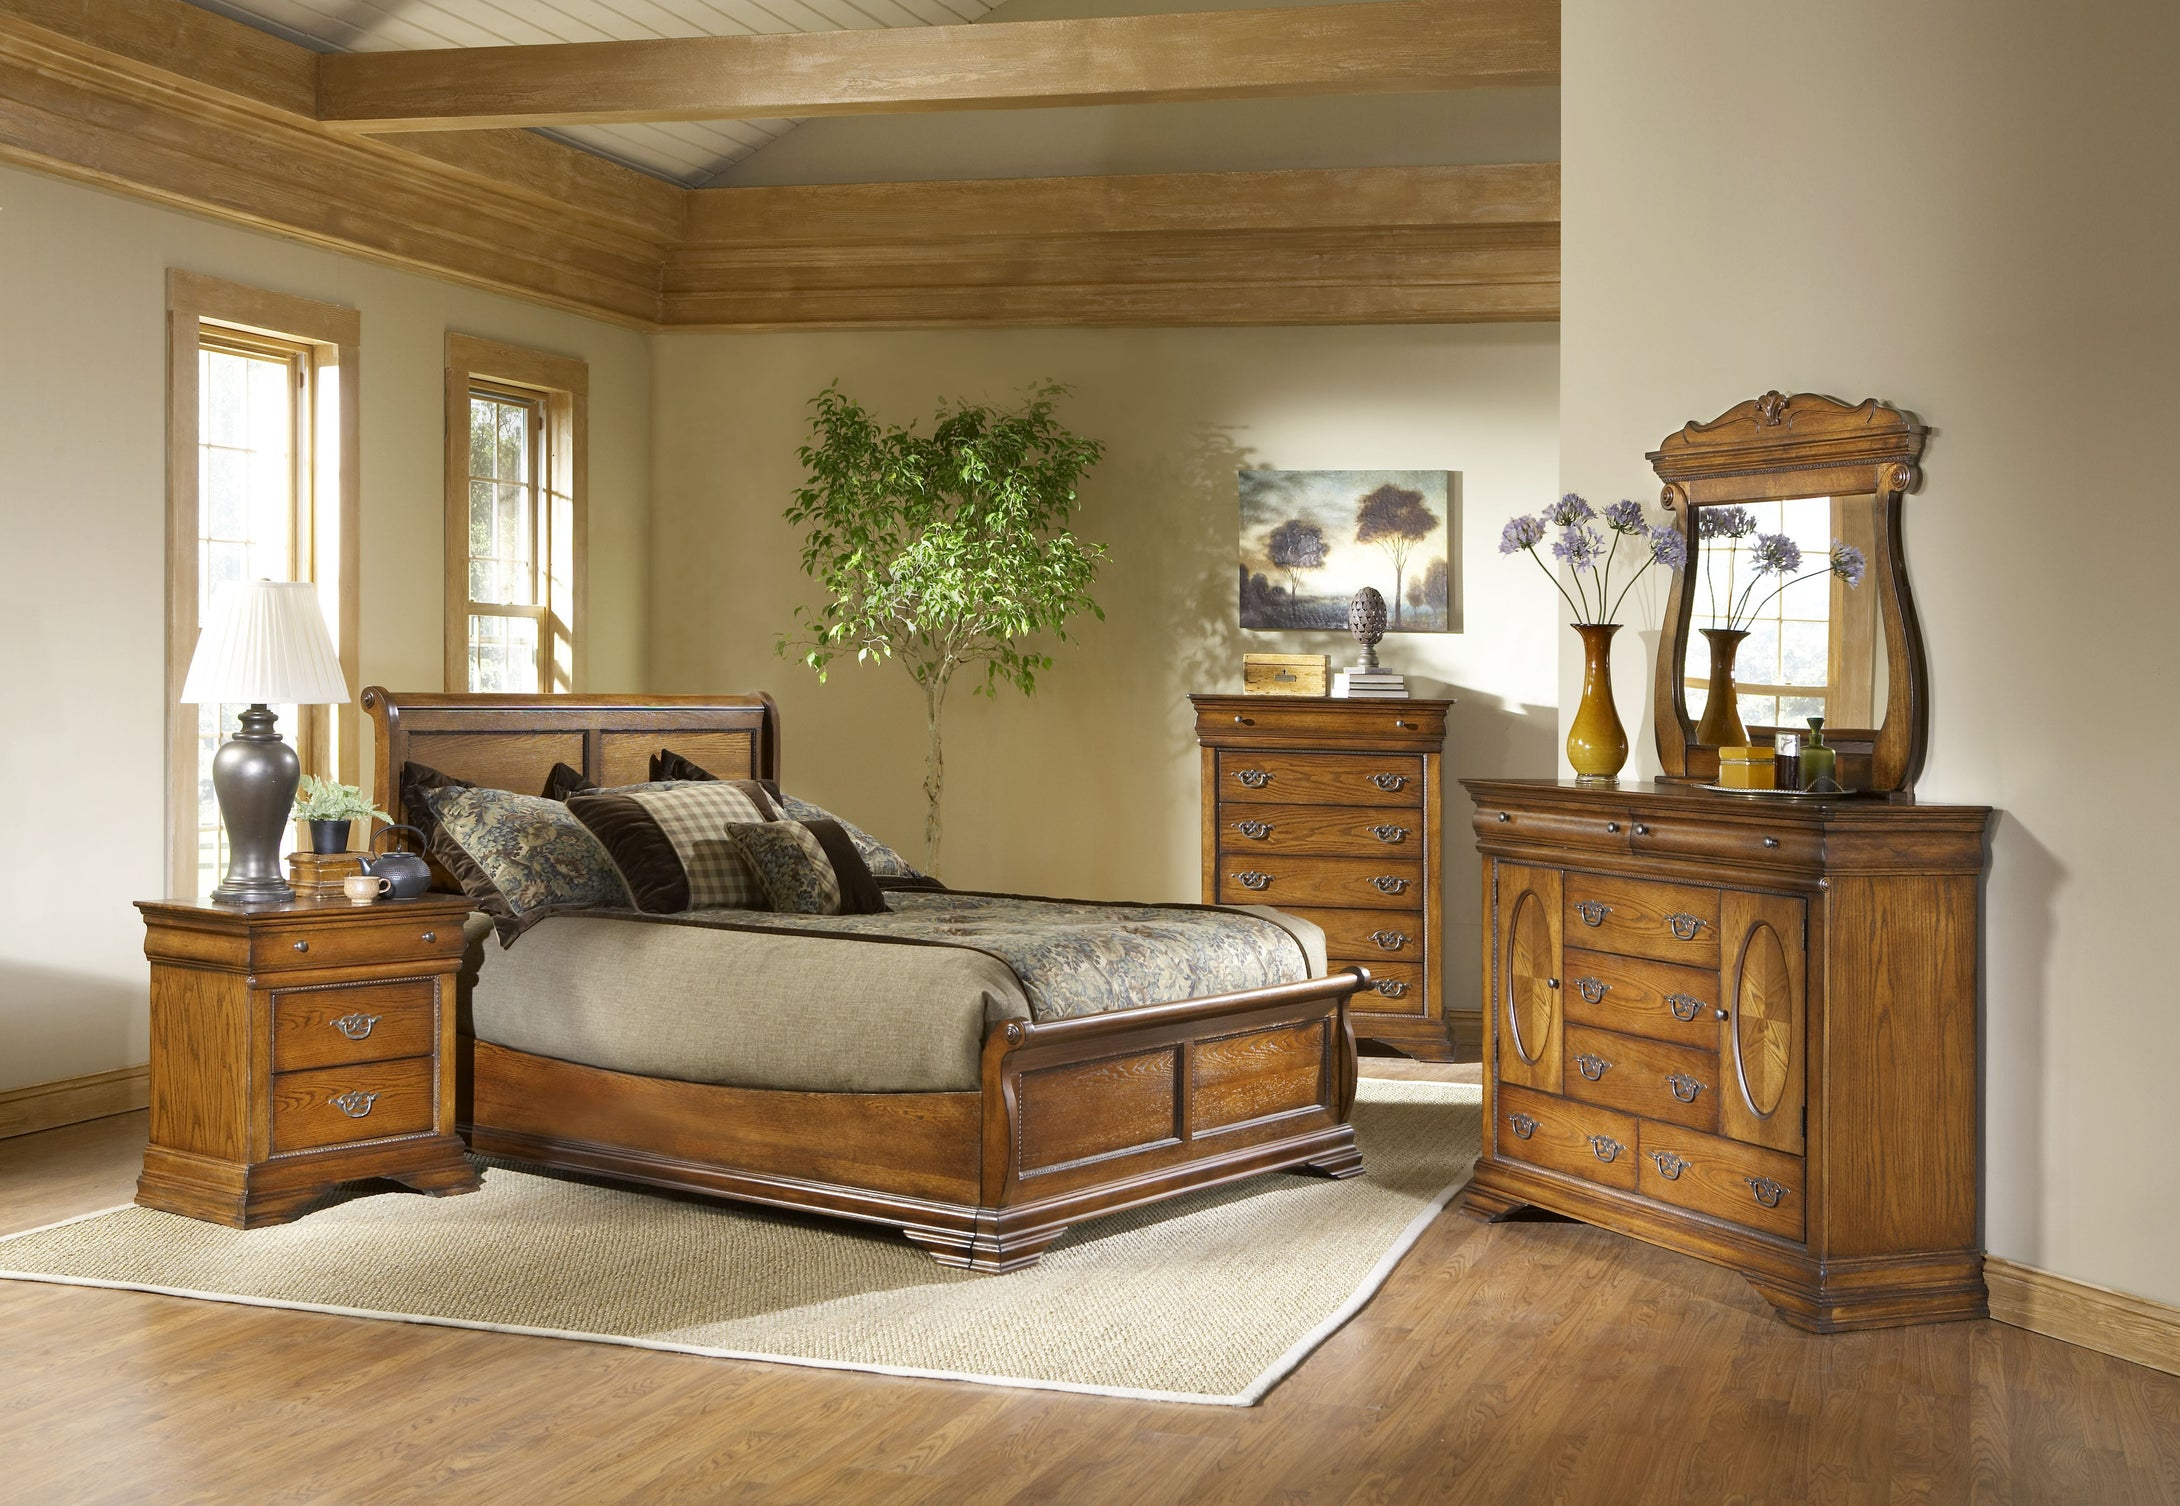 Shenandoah Oak King Bedroom Set by Elements Furniture - Cox Furniture and Flooring